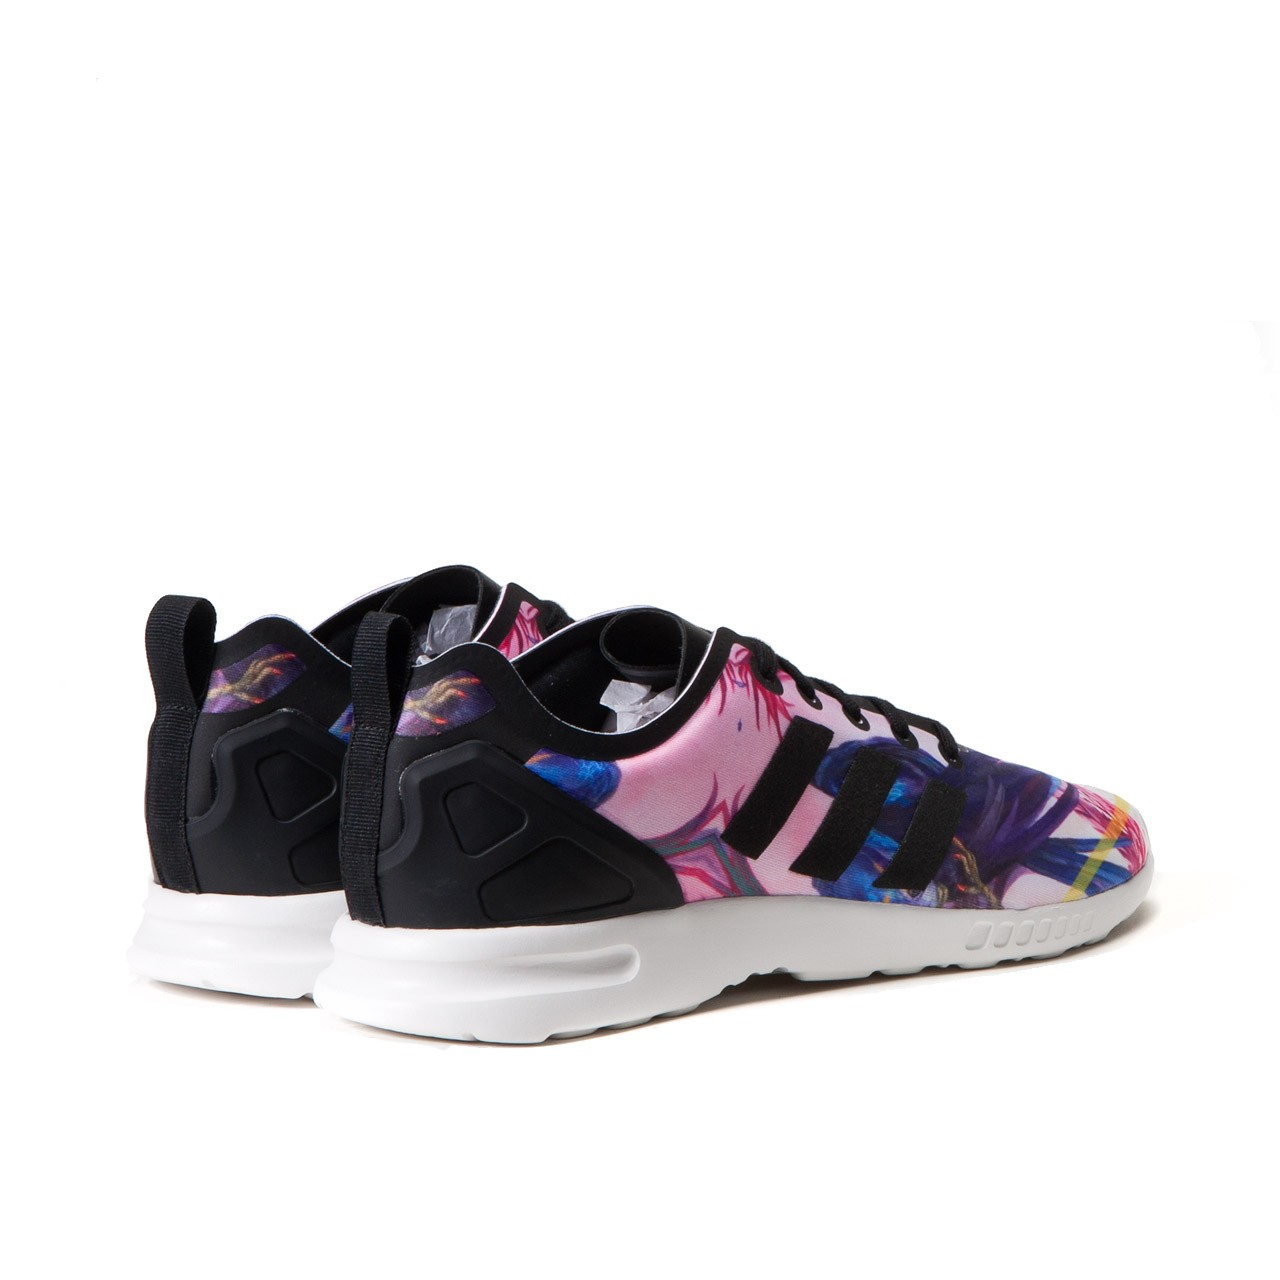 Zx Flux Floral | Fluxs | Red Zx Flux